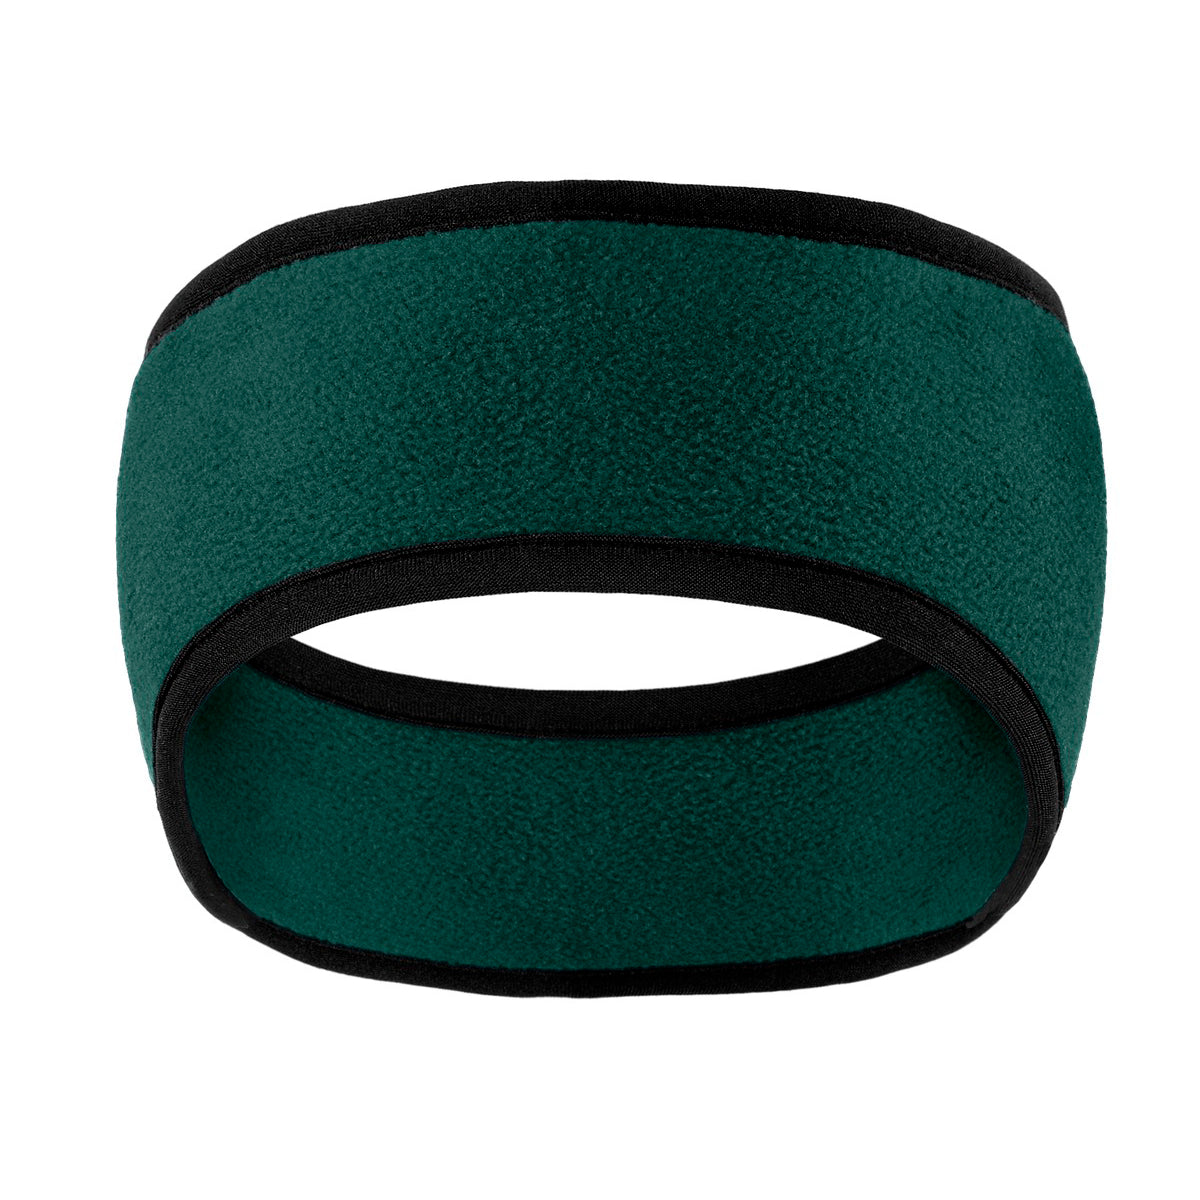 Two-Color Fleece Headband Dark Green